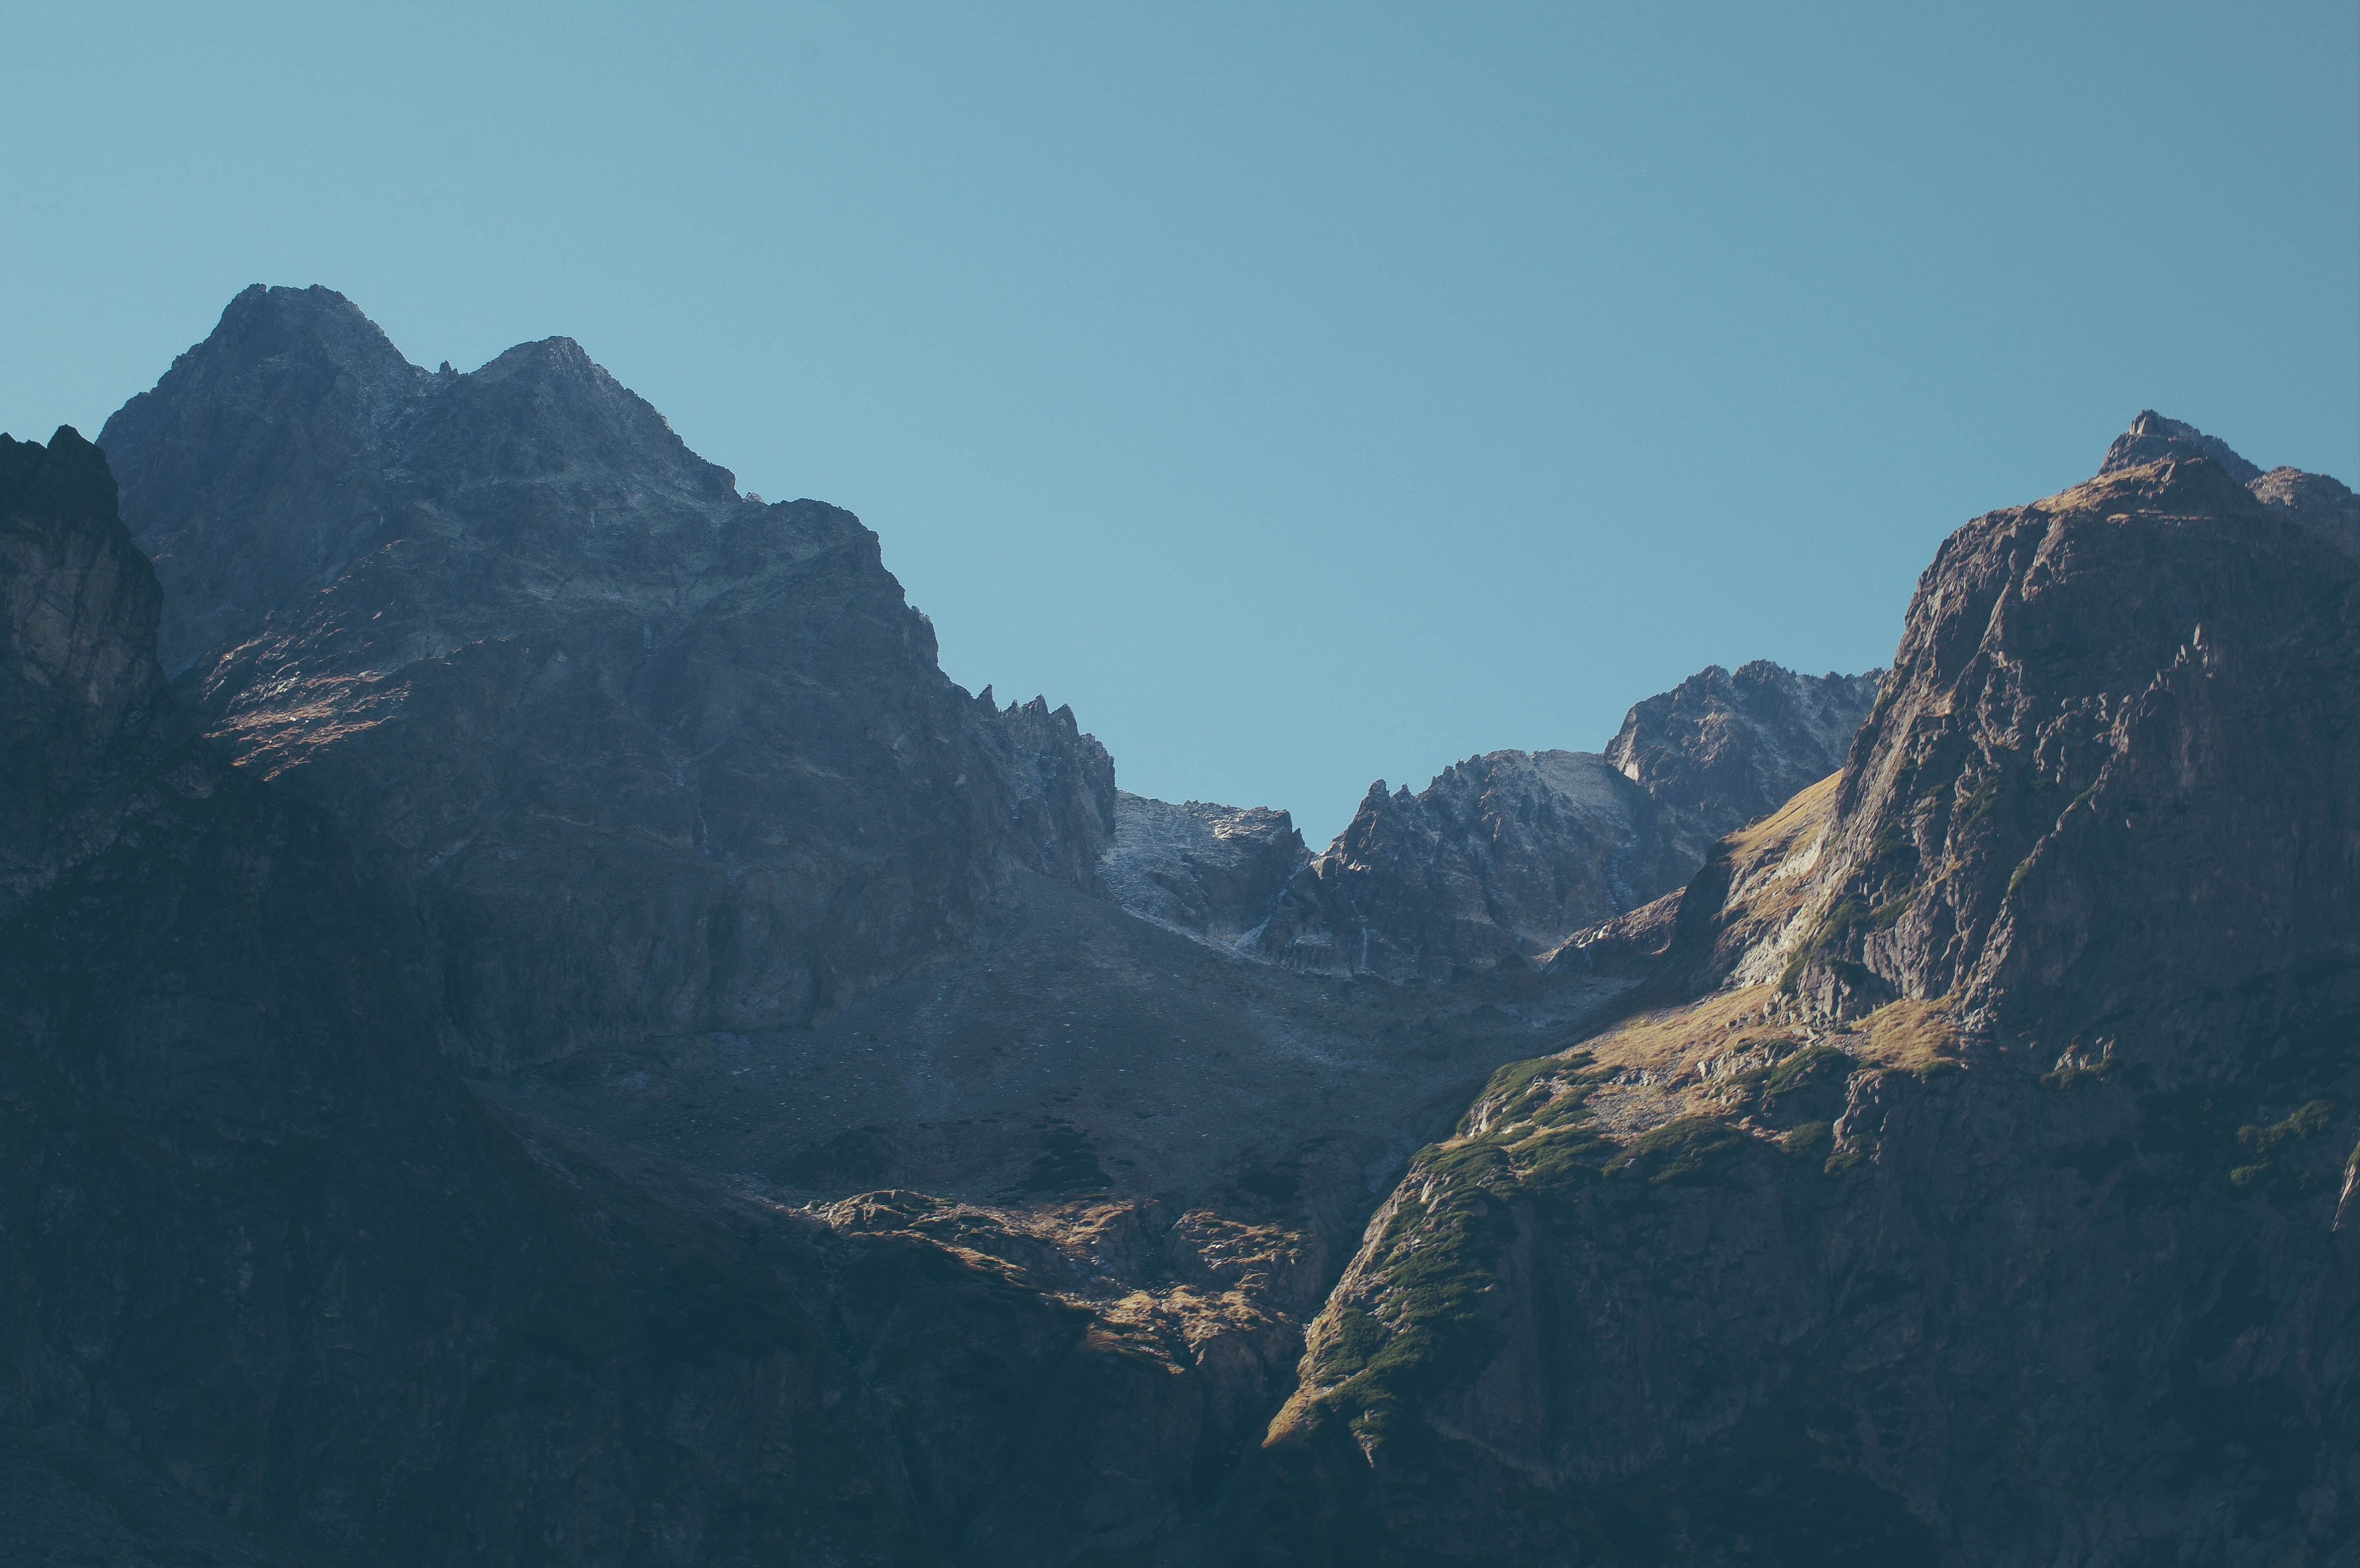 Sharp craggy ridges under a blue sky in the Tatra Mountains